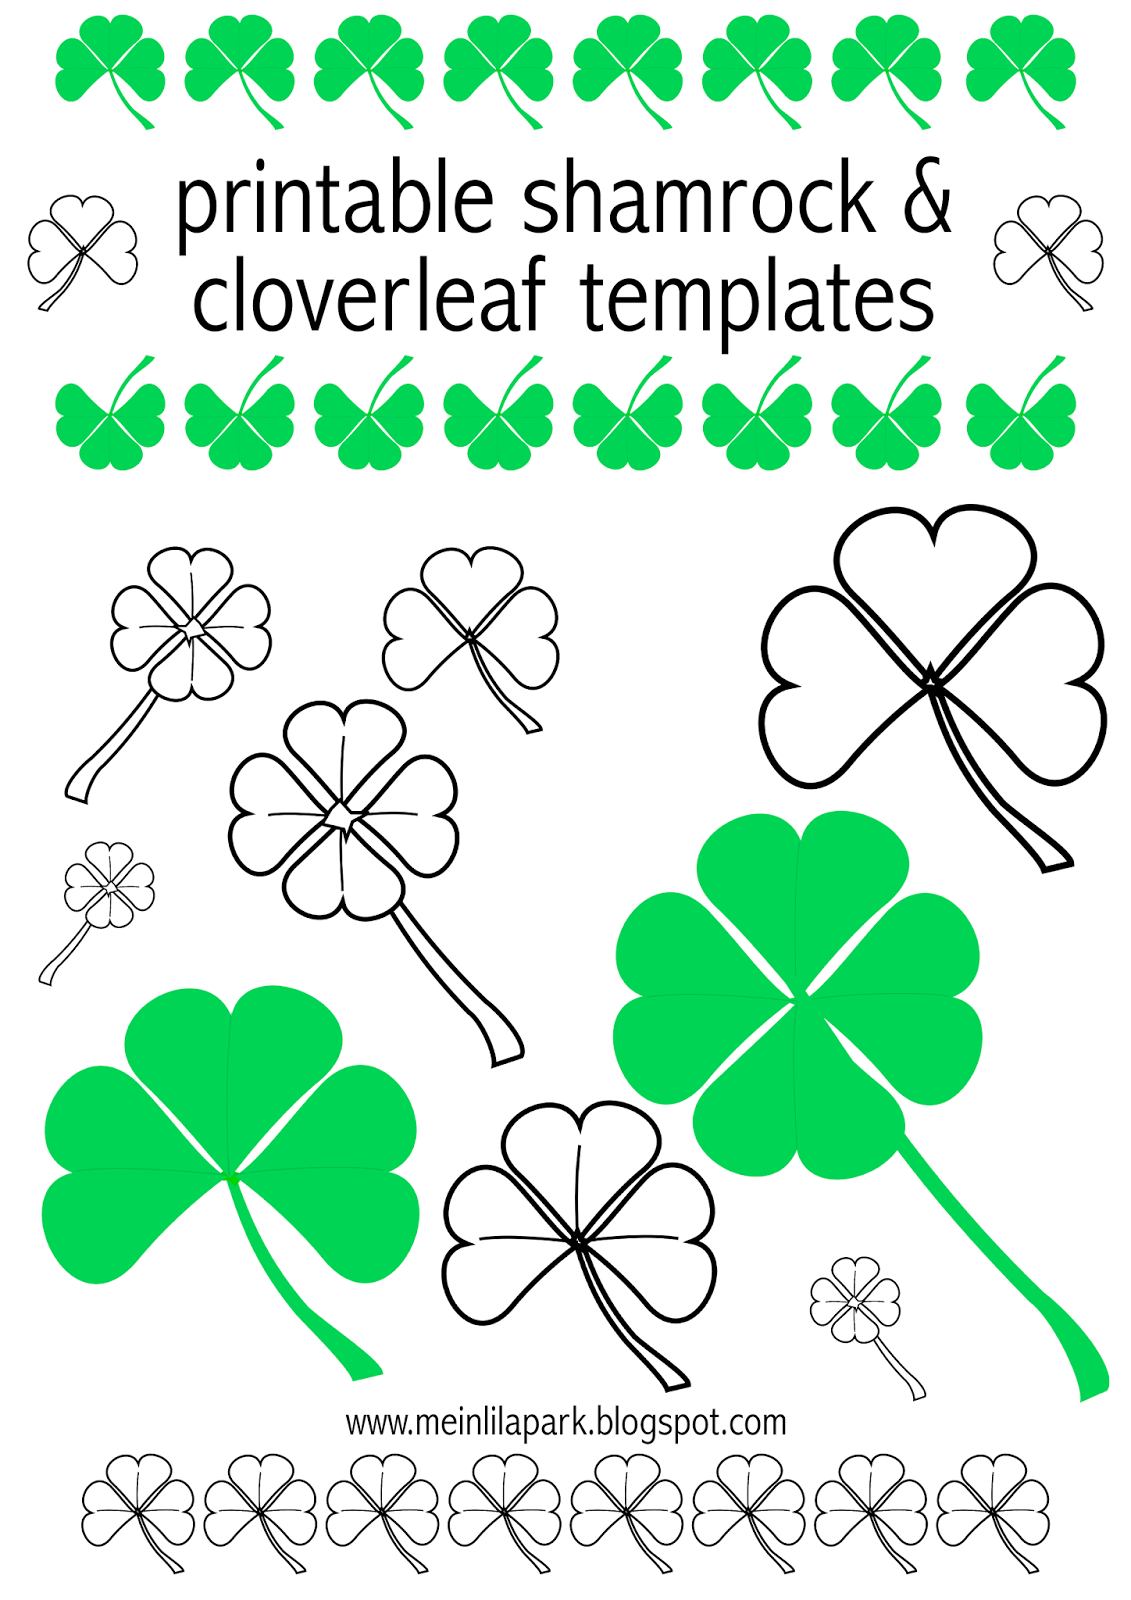 free digital shamrock scrapbooking paper and templates kleeblatt